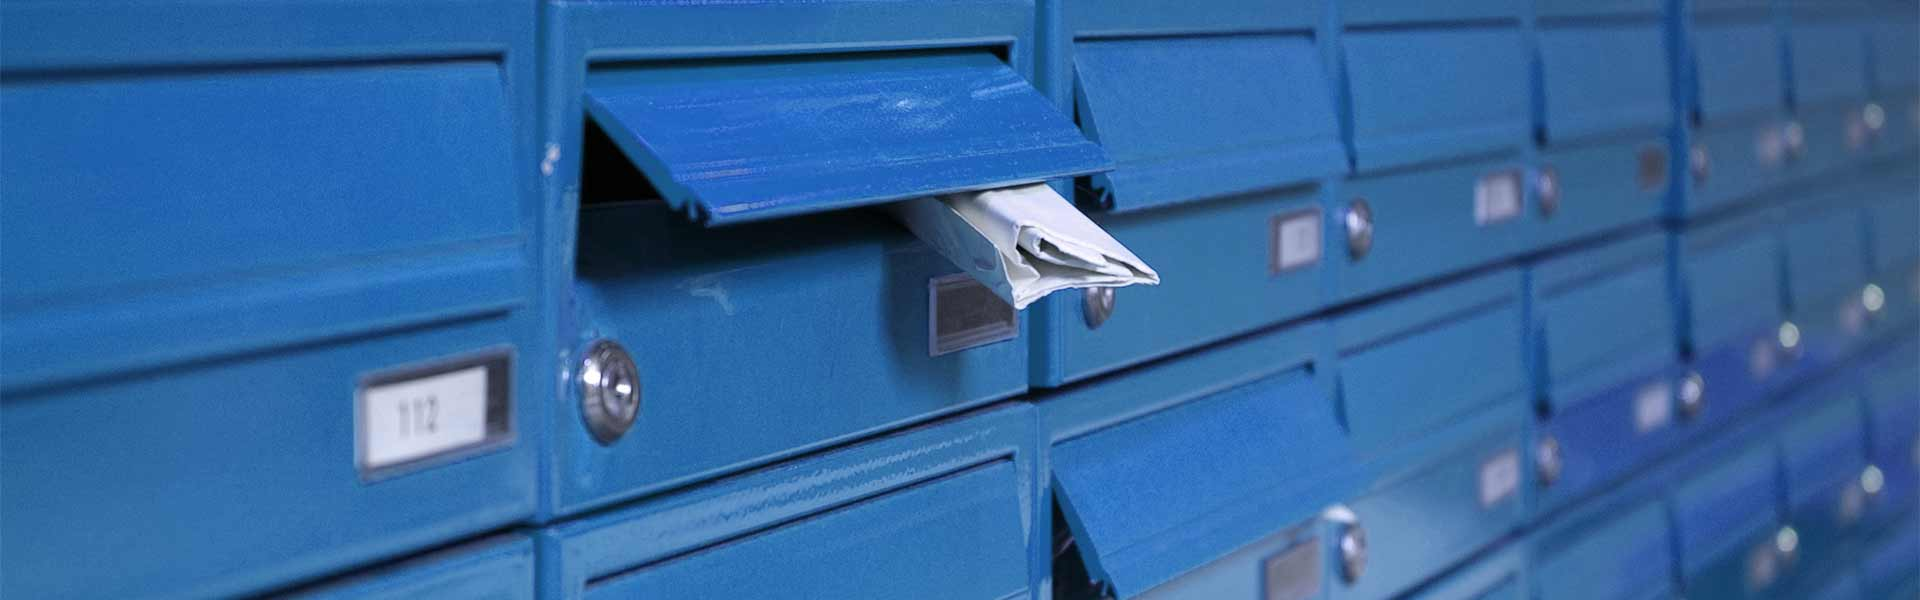 messageconcept inhouse mailboxes